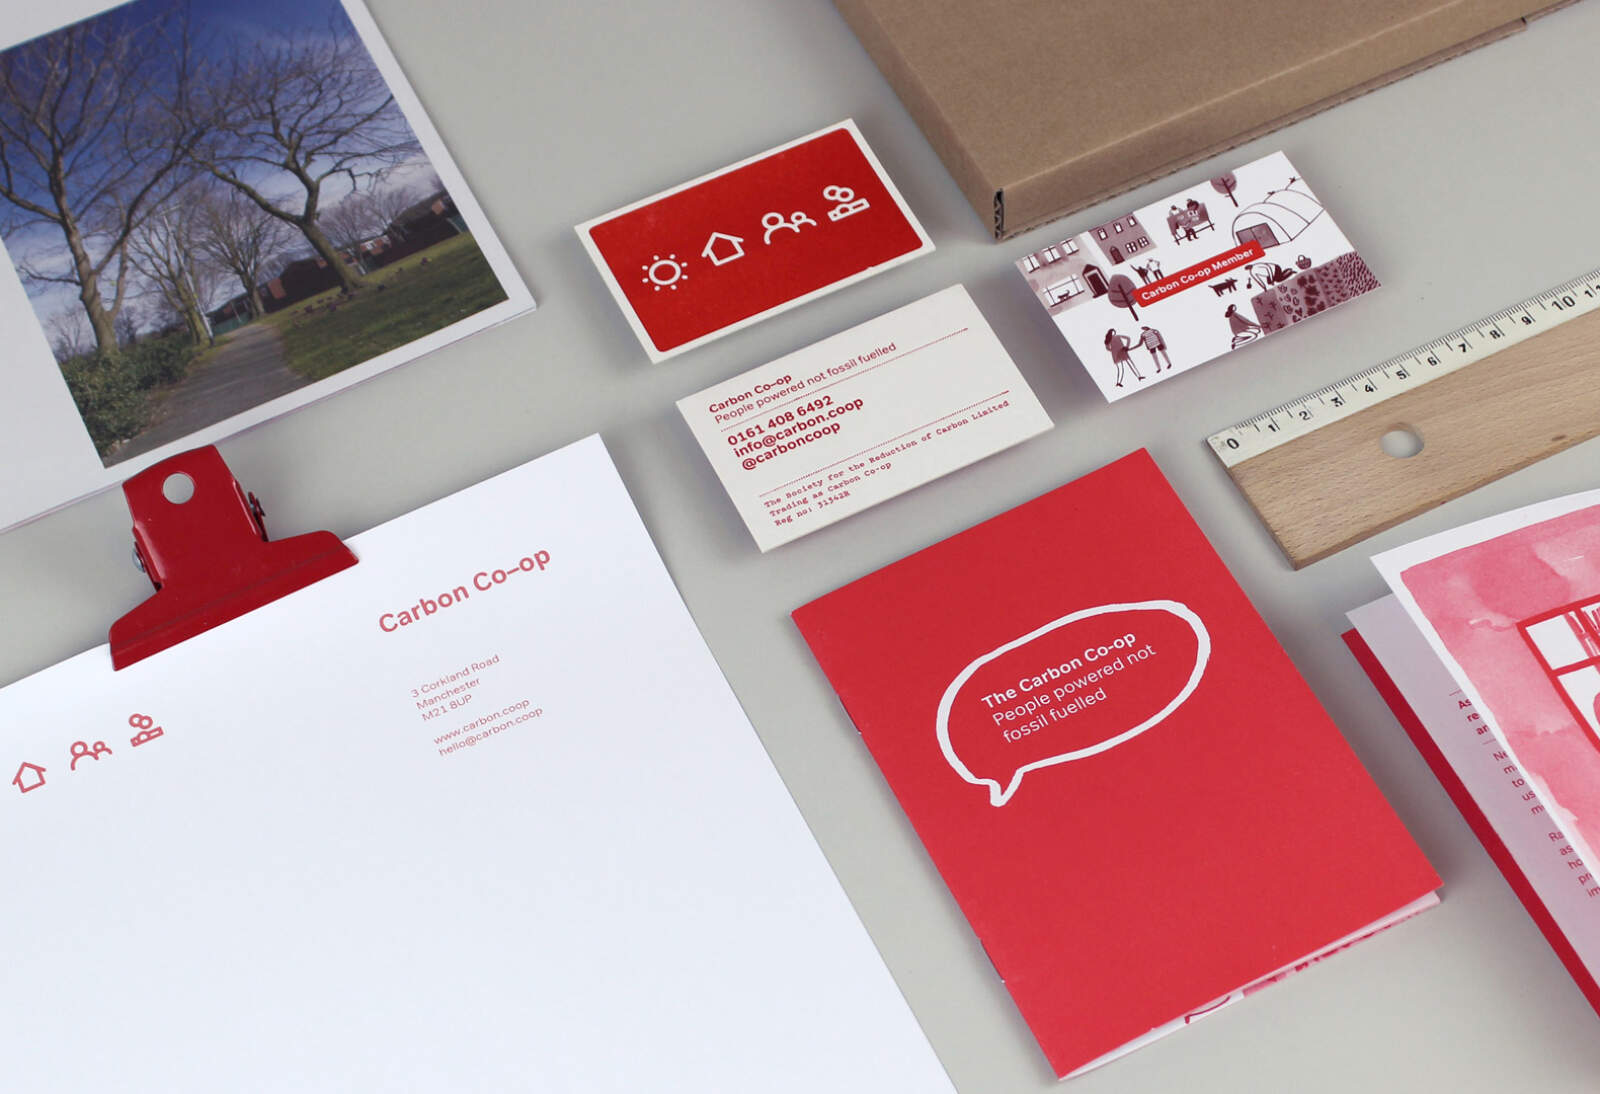 Carbon Coop branding applied to various stationery — letter heads, booklets, business cards, etc.